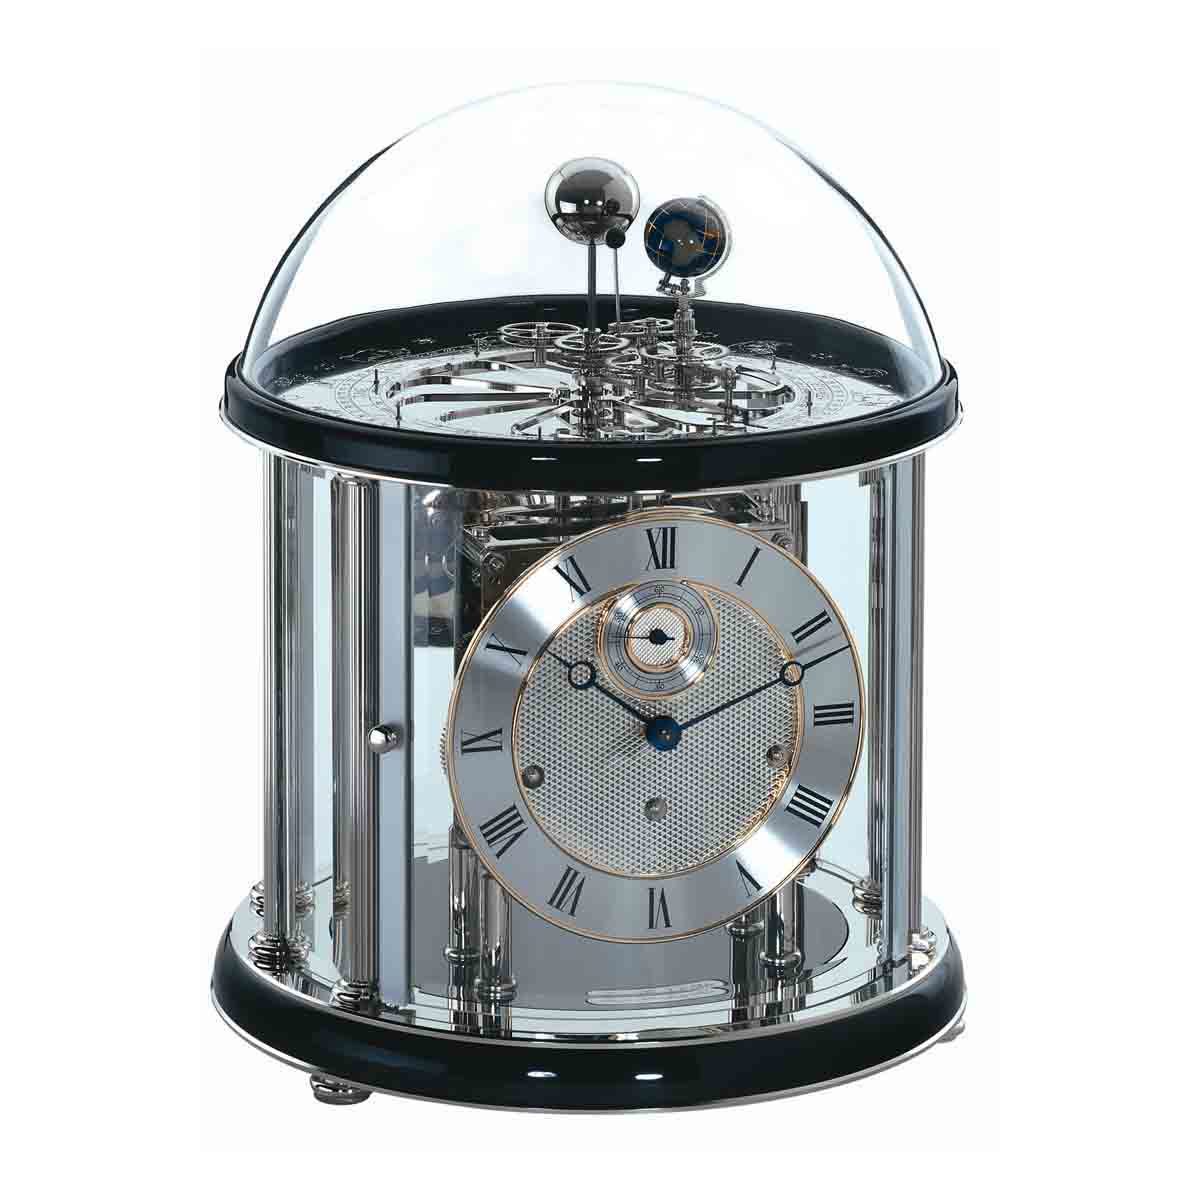 TELURIUM II 22823-740352 Astrolubium Table Clock